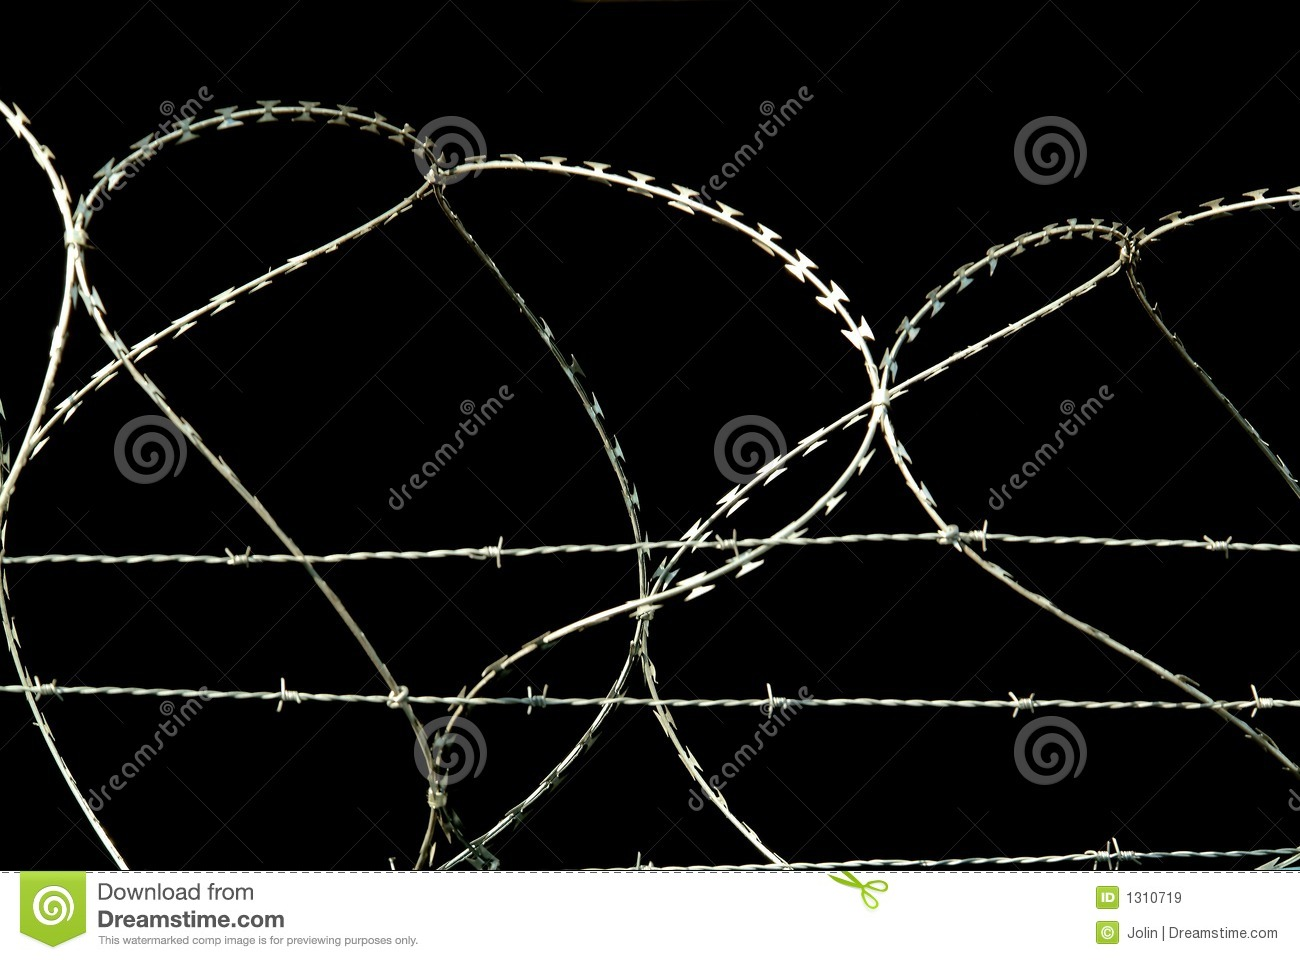 Barbed wire on black background royalty free stock images